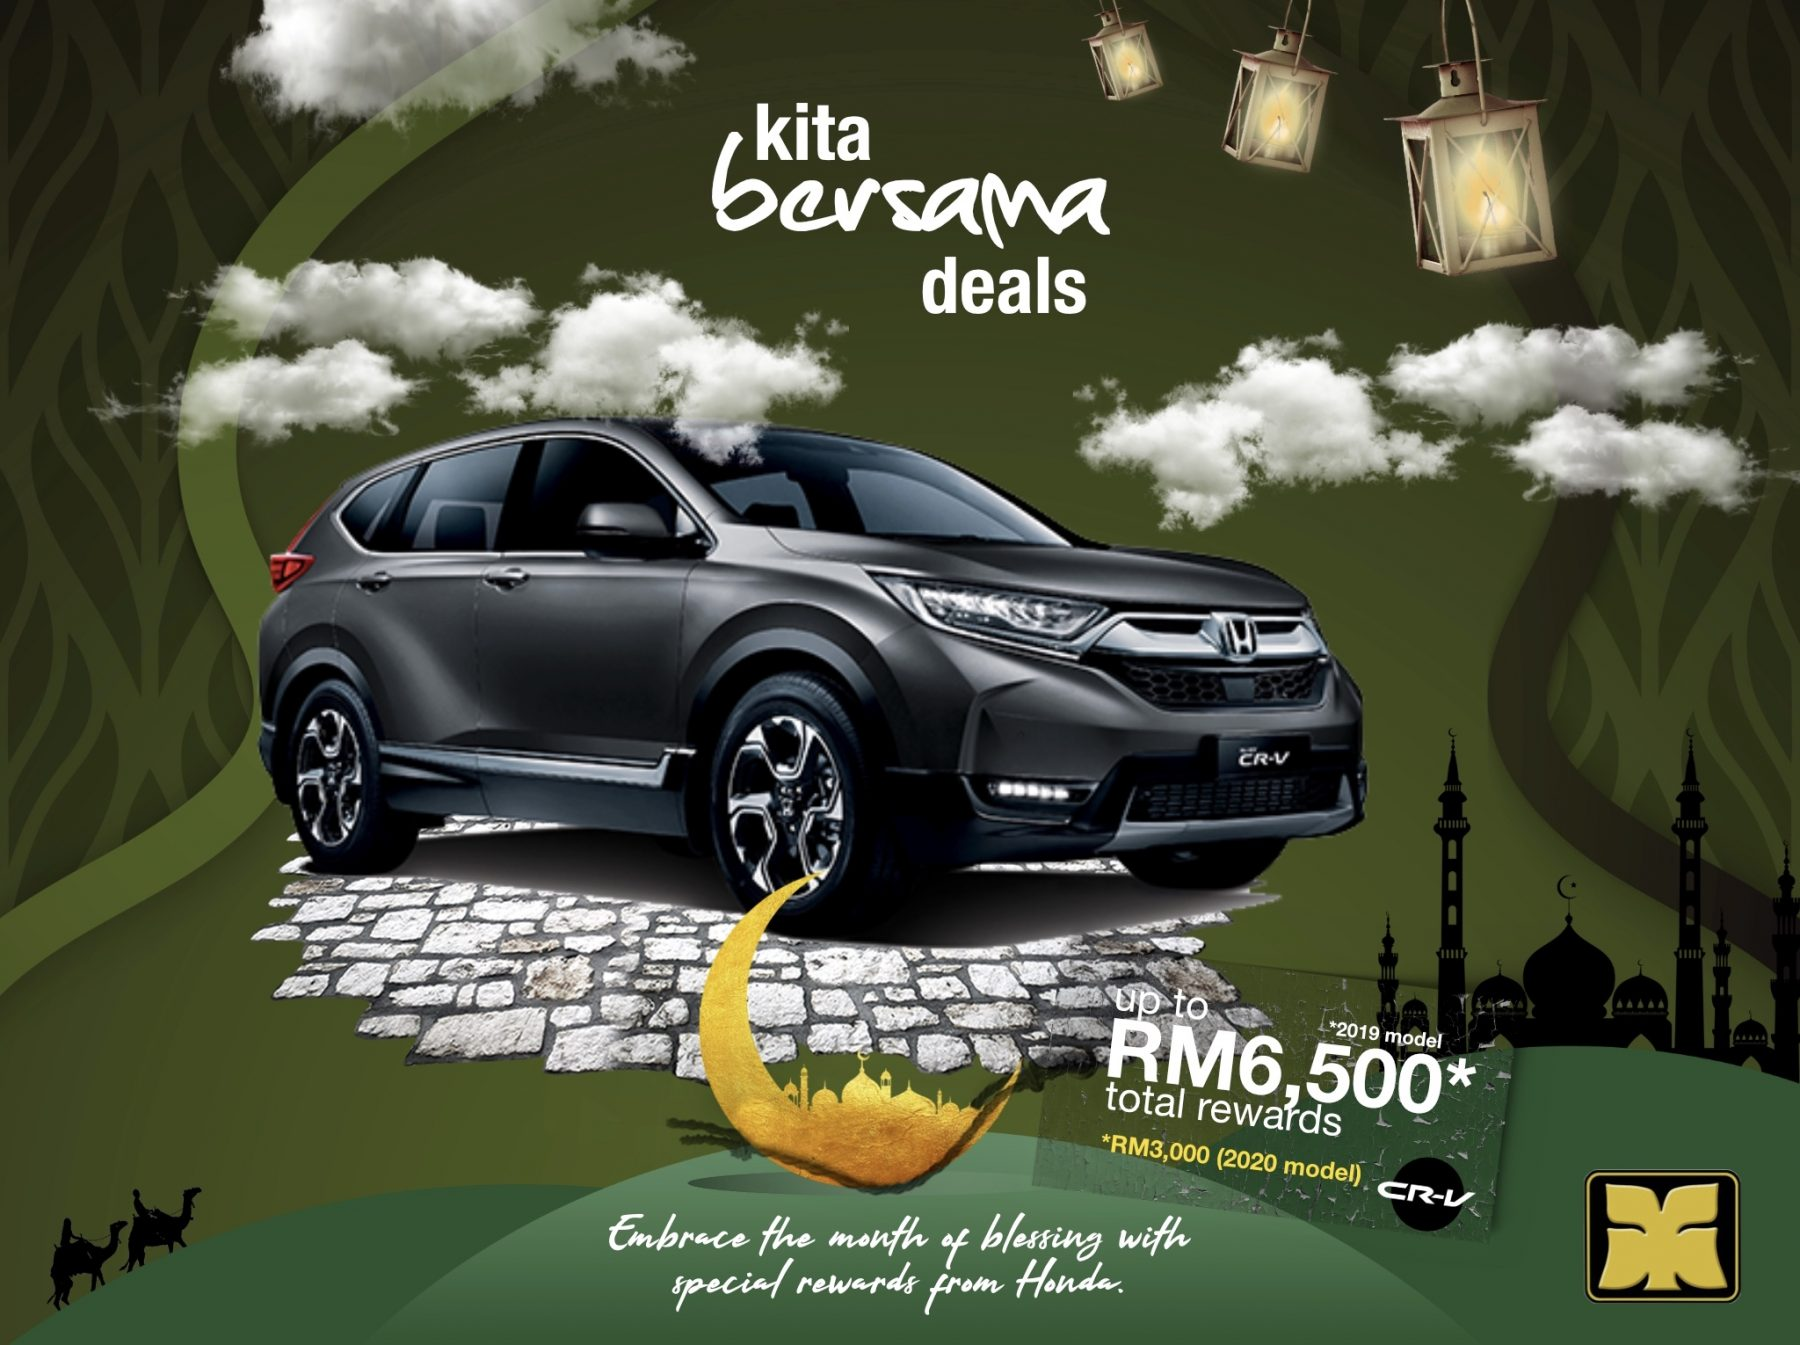 Month of Blessing Kita Bersama Deals Yong Ming Honda CR-V